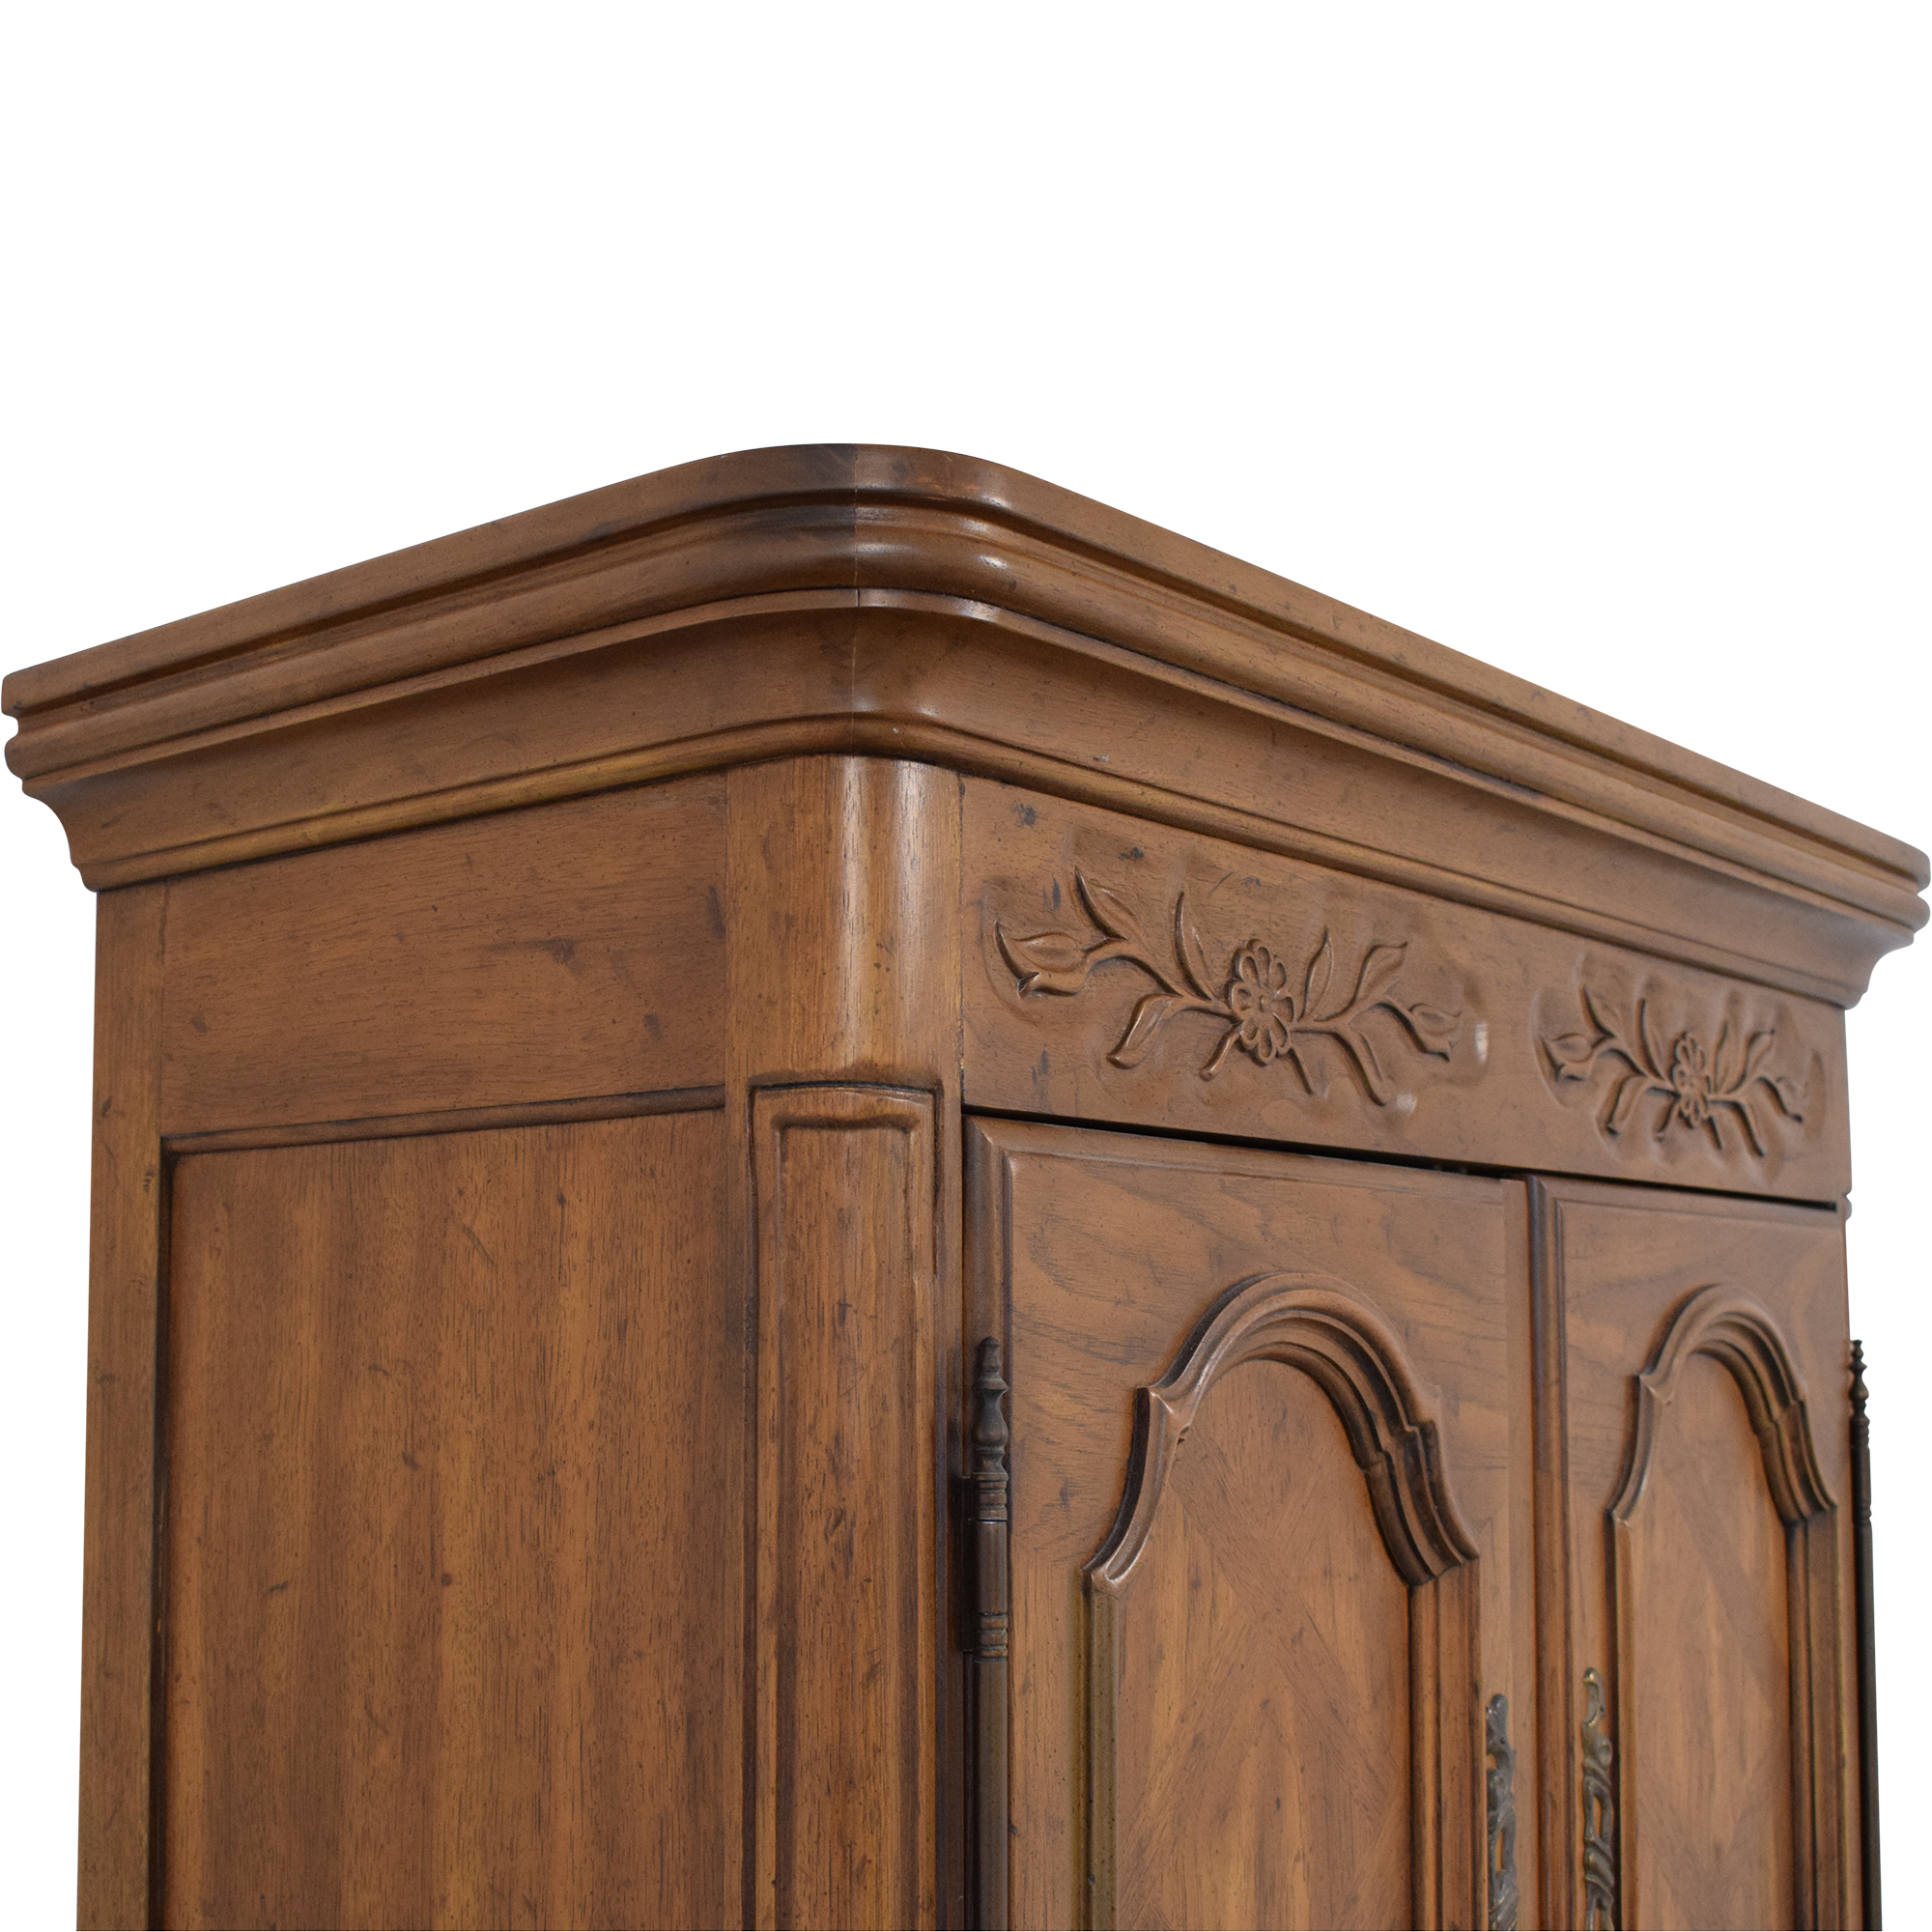 shop Drexel Armoire with Cabinets Drexel Wardrobes & Armoires